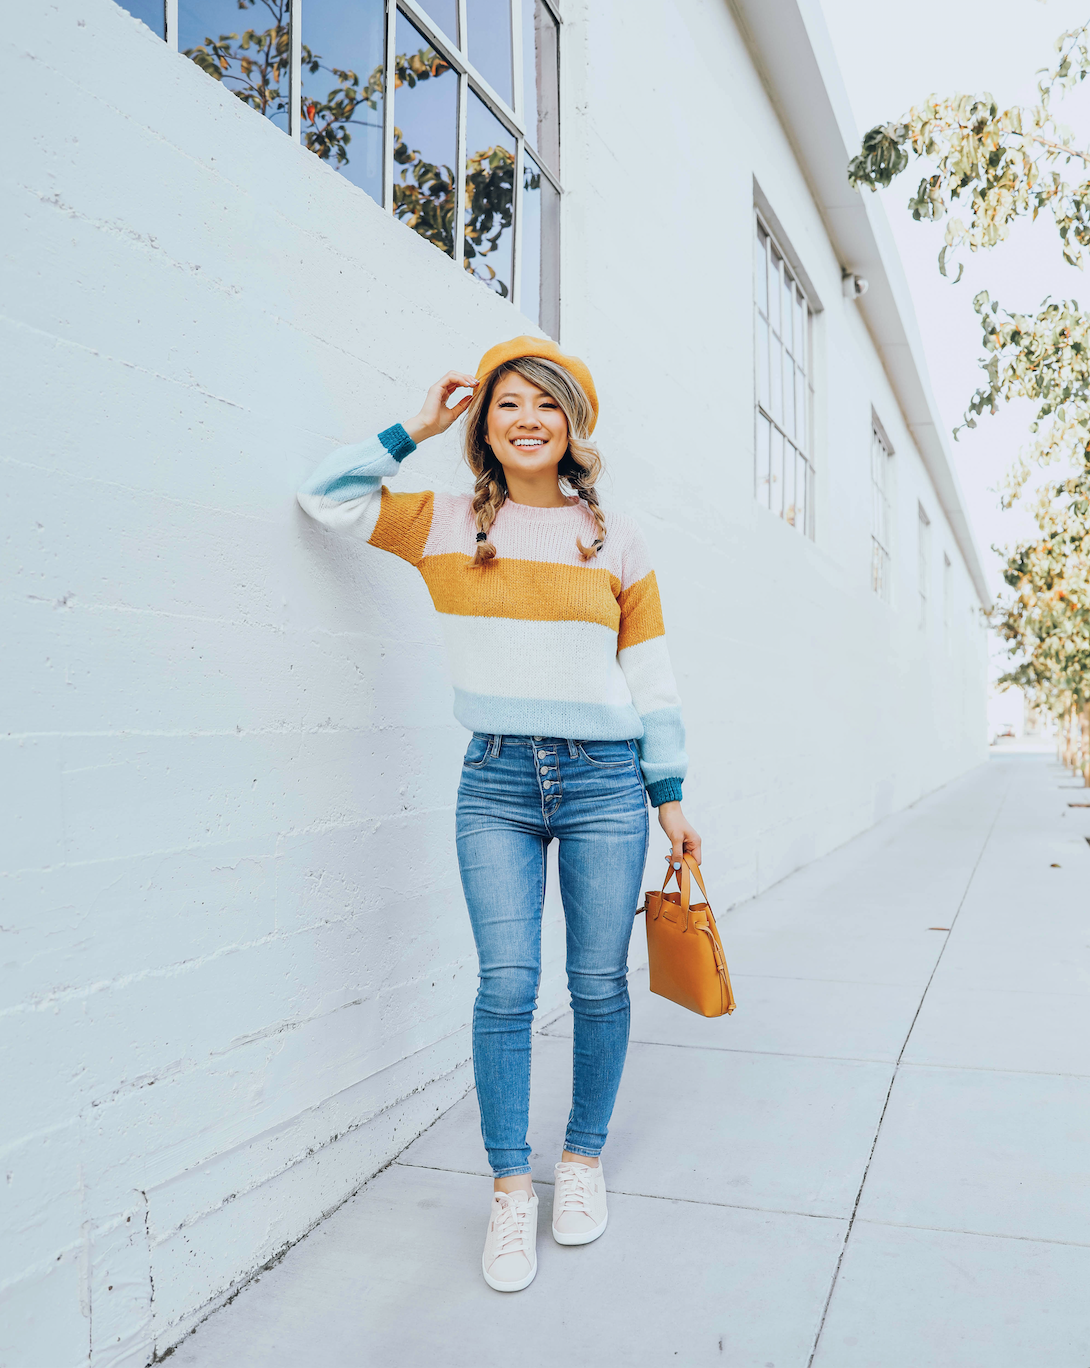 fashionbyally how to find your personal style